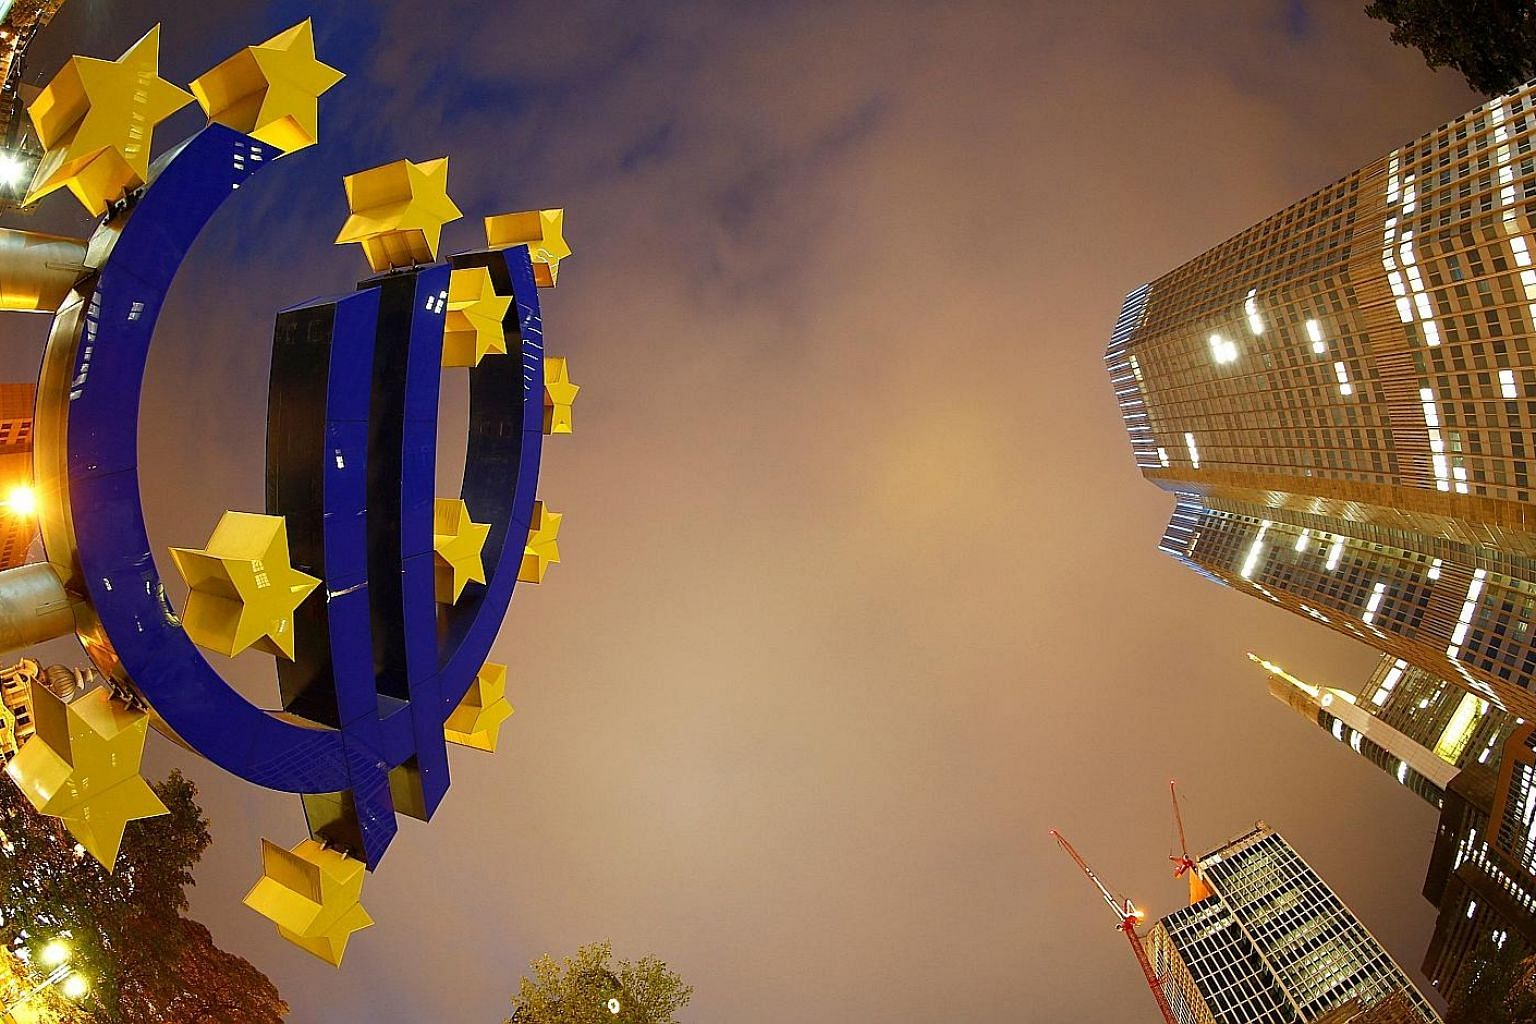 Although the European Central Bank did not make any changes to its interest rates last week, its president Mario Draghi fuelled talk of a rollback of cheap European money by saying that policymakers would begin re-evaluating its stimulus in the autum